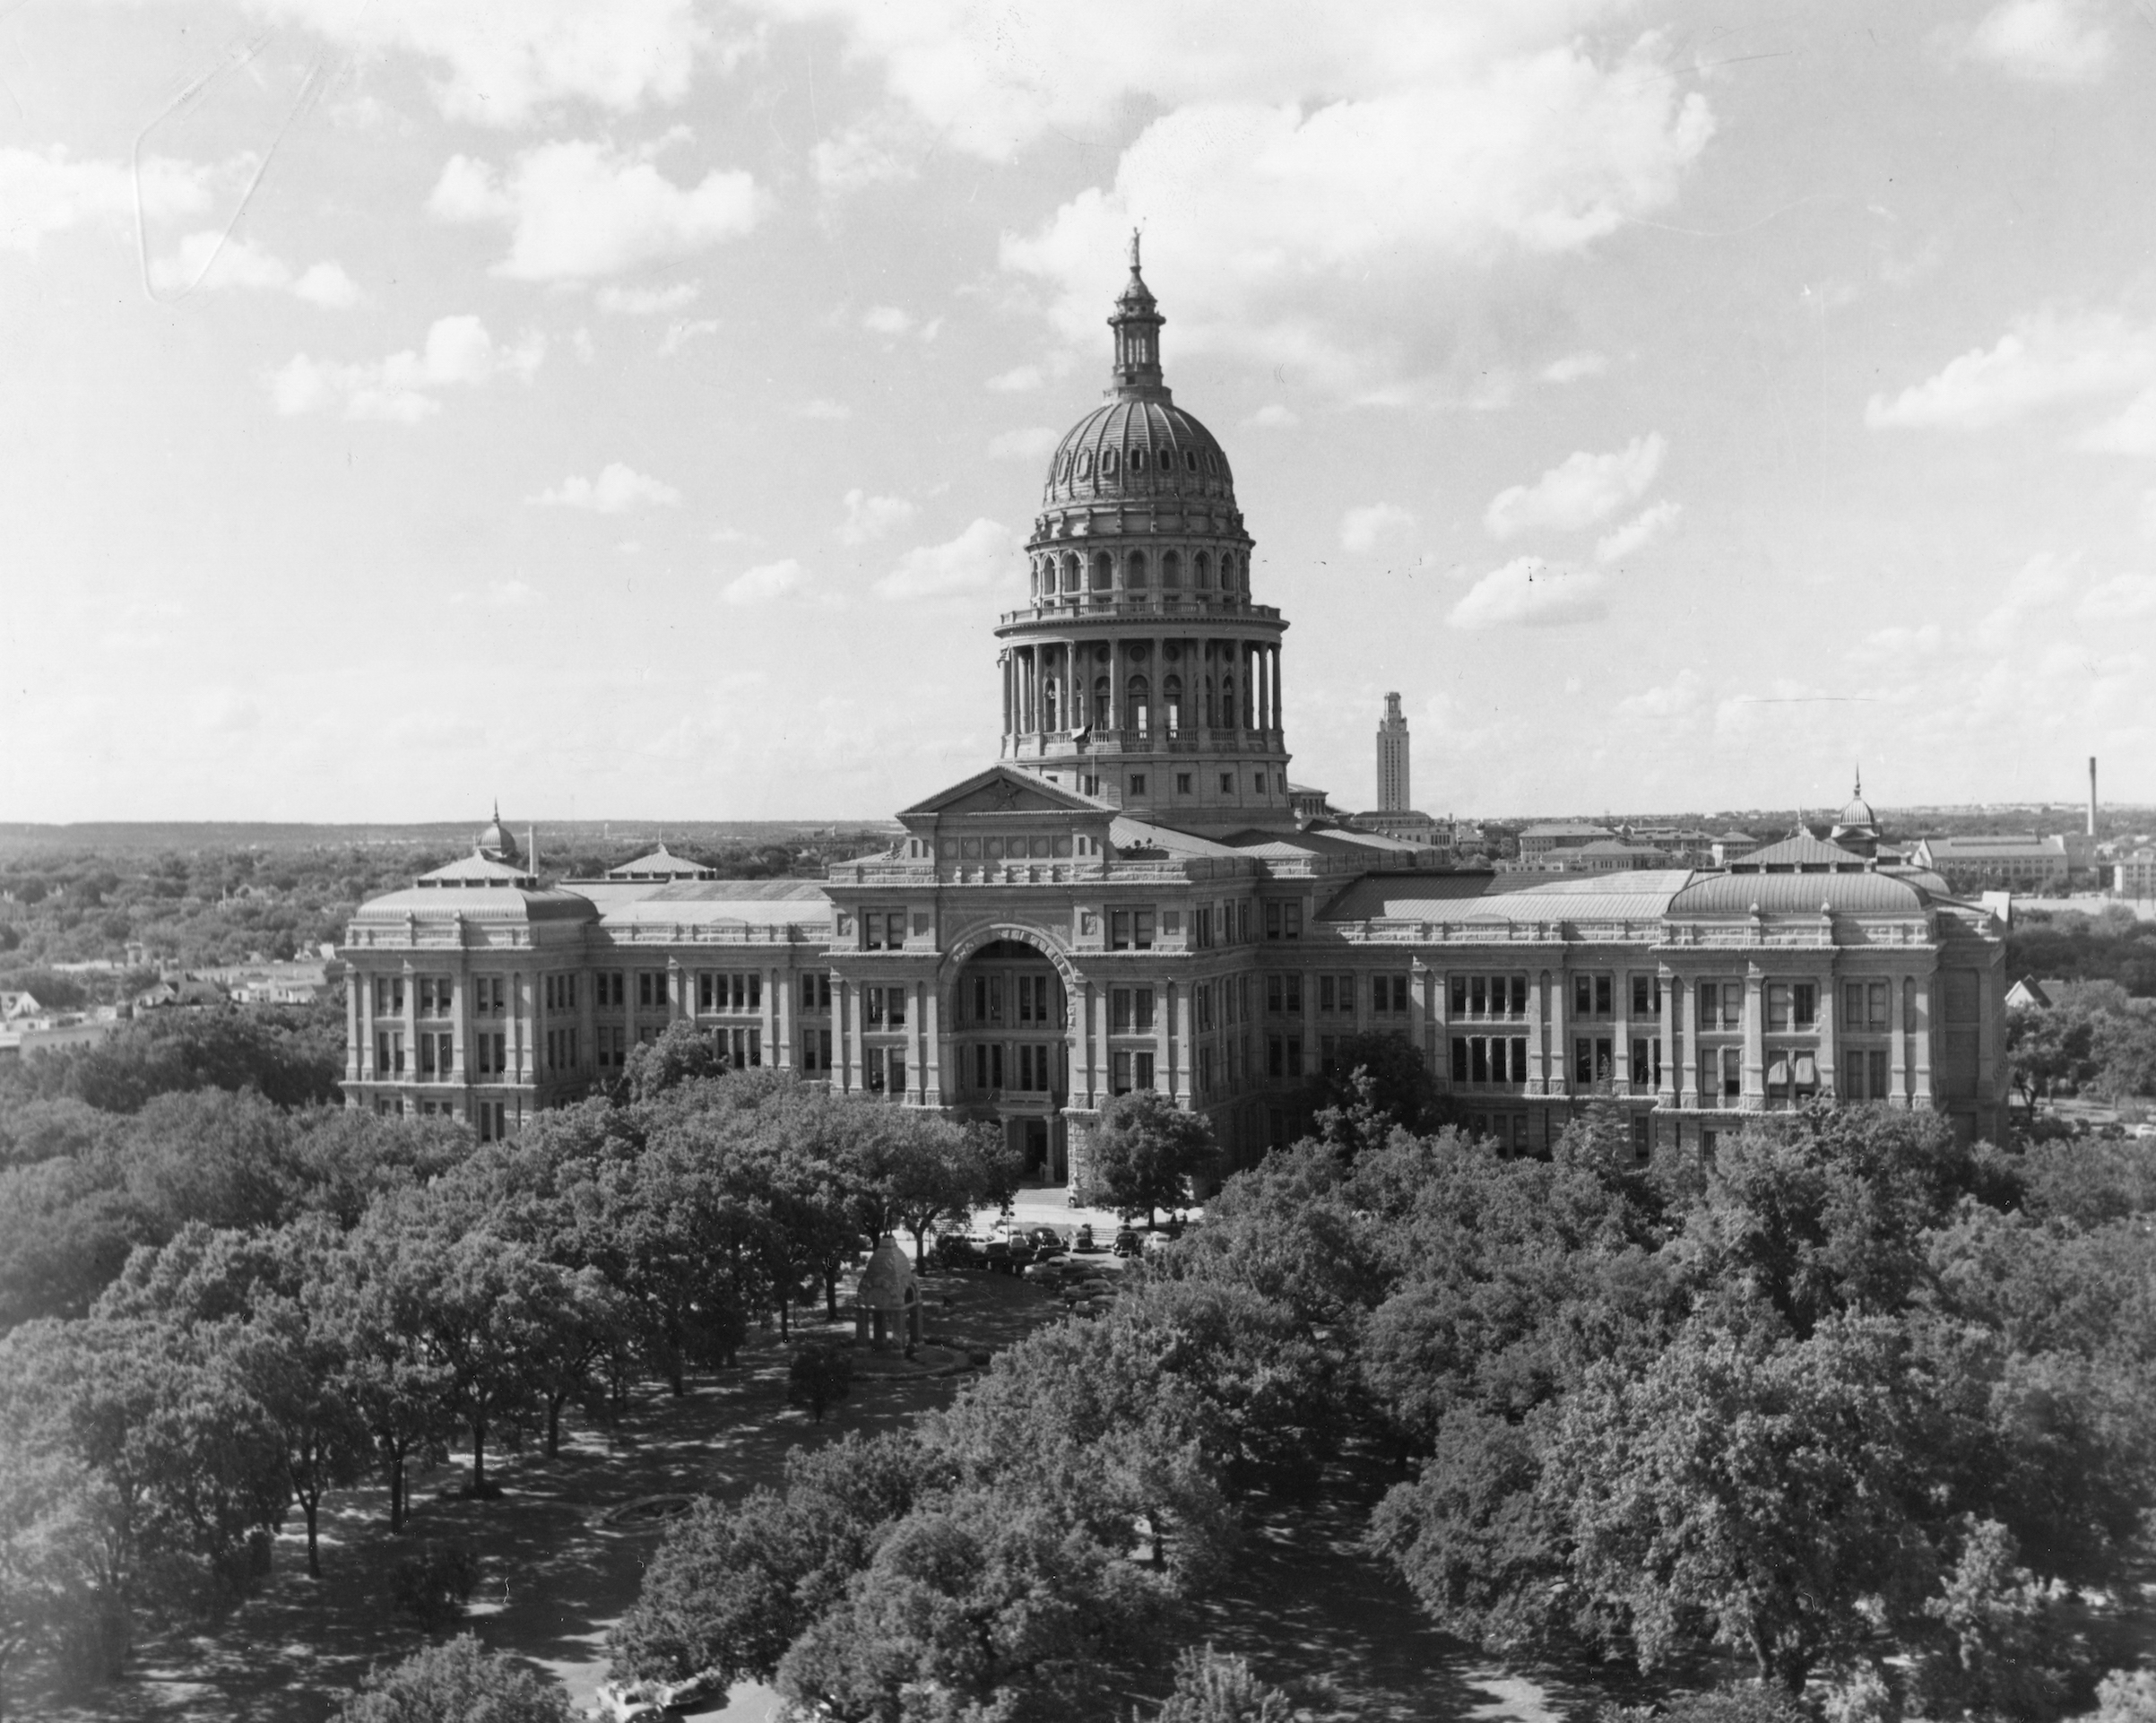 View of the State Capitol Building (completed 1888), Austin, Texas, 1960.